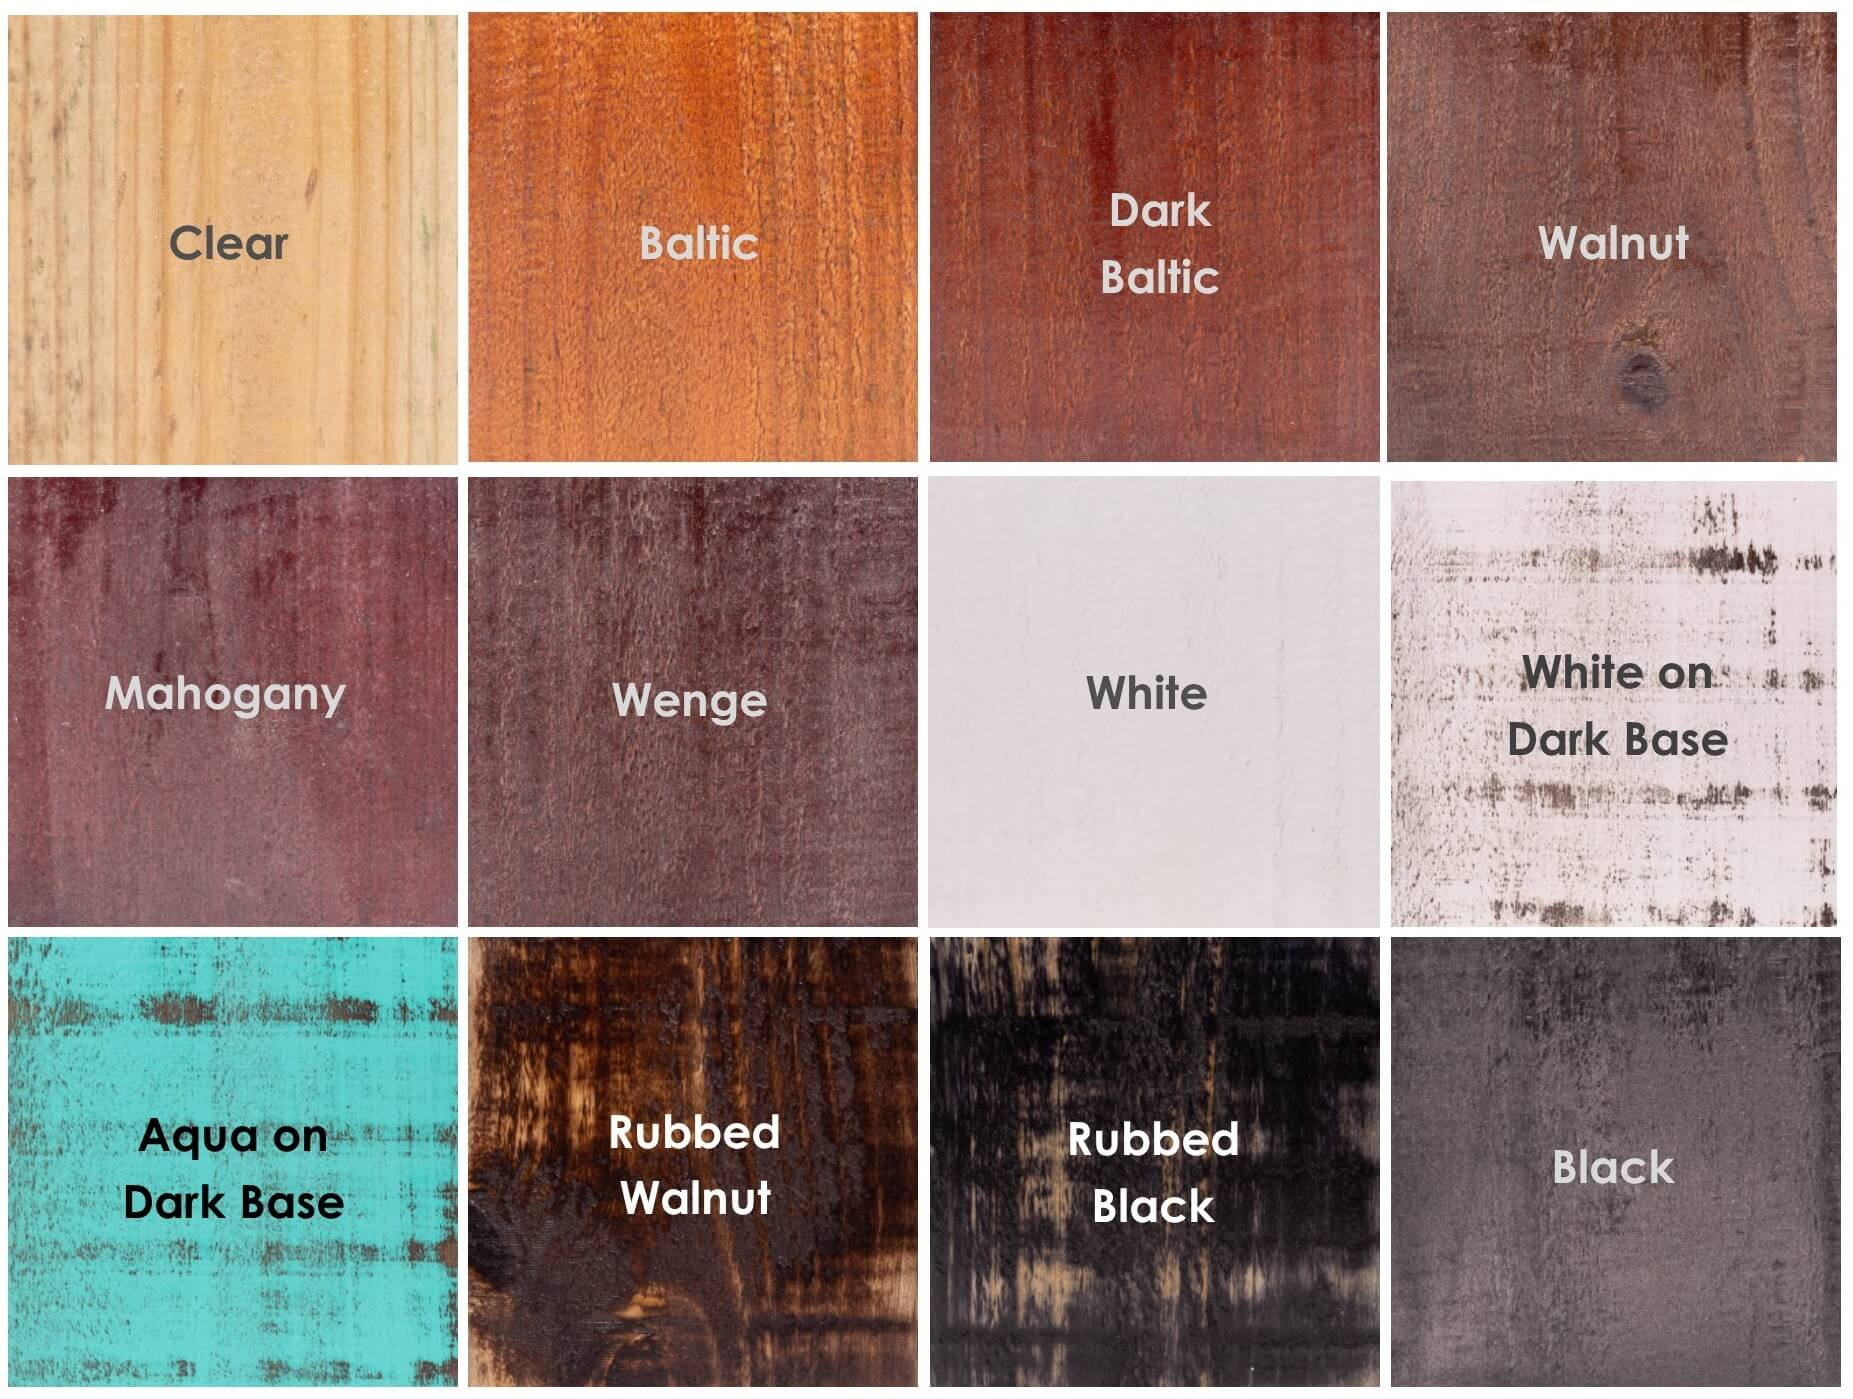 treated-pine-colour-swatches-06-06-18.jpg